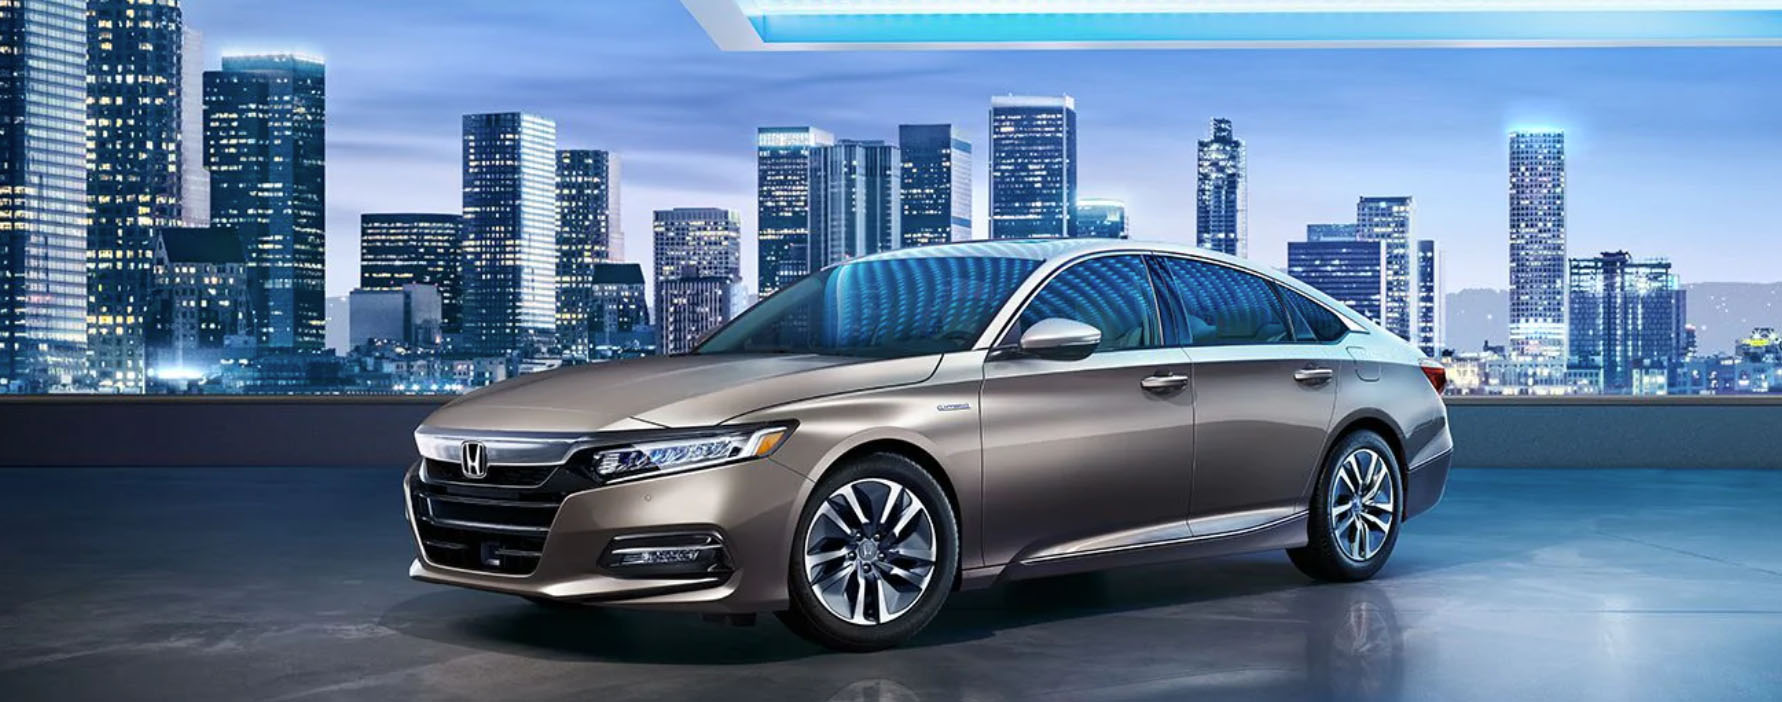 2020 Honda Accord For Sale in Huntington